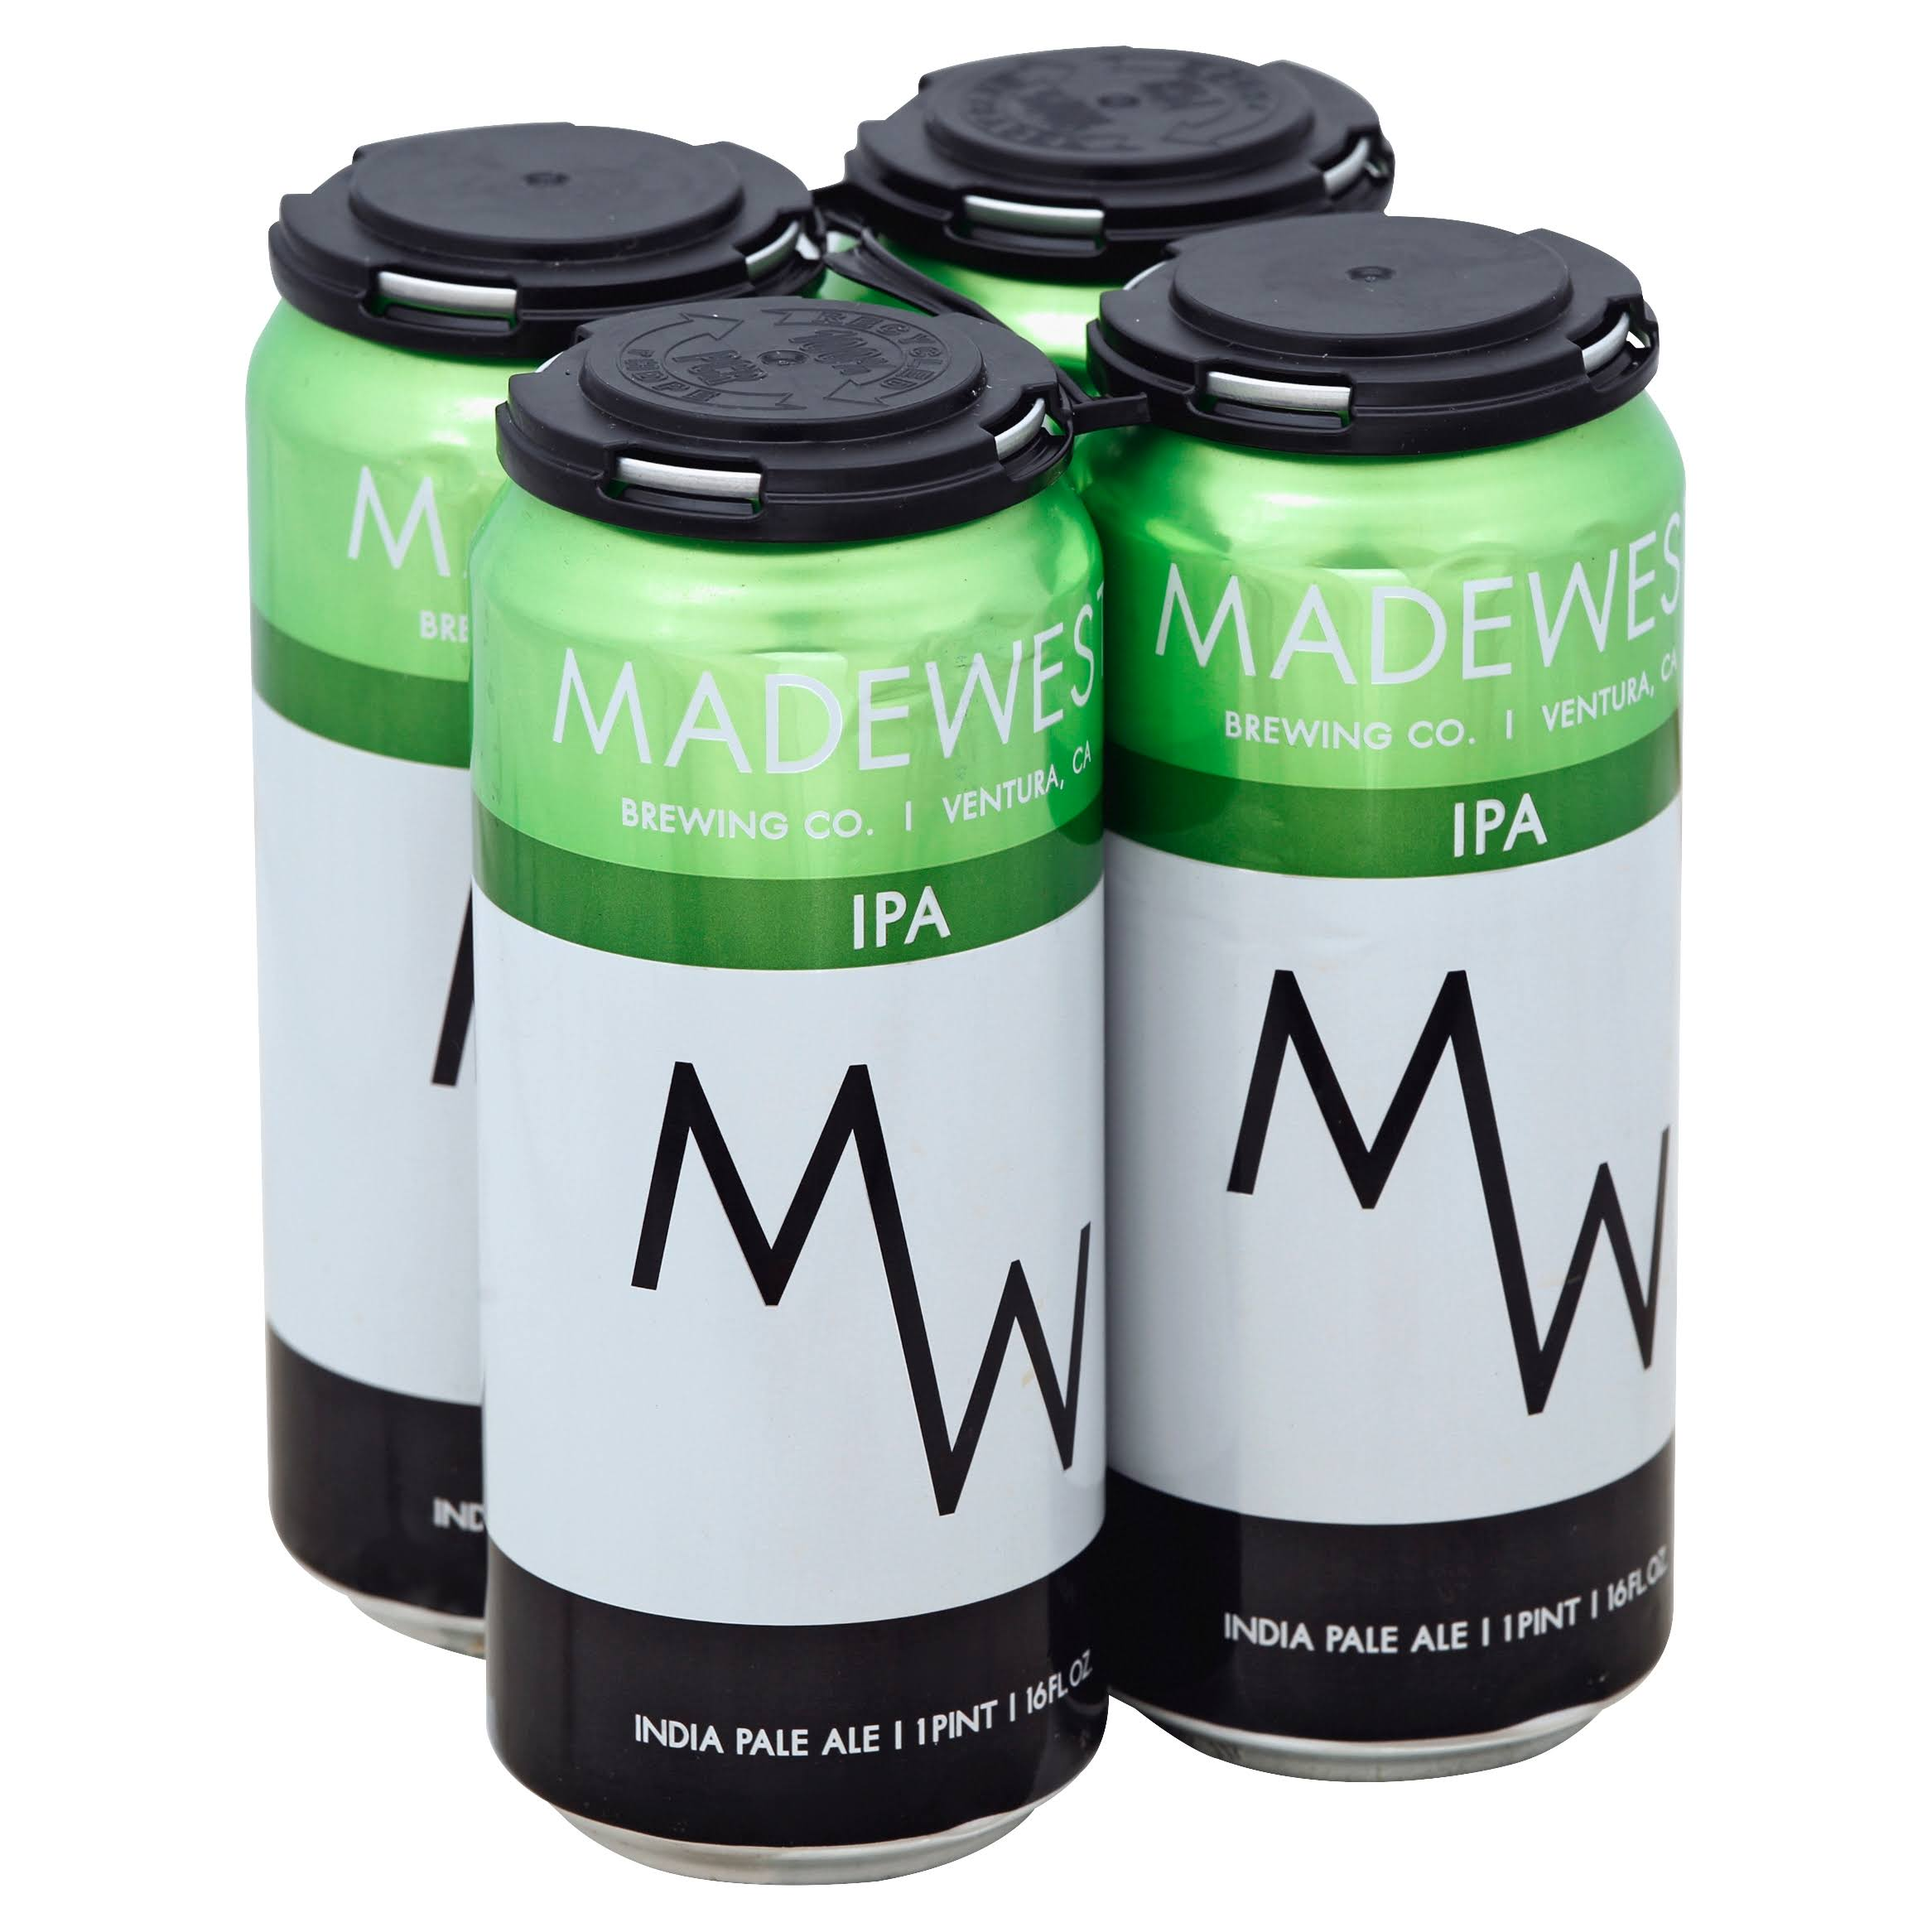 Madewest Beer, India Pale Ale - 4 pack, 16 fl oz cans